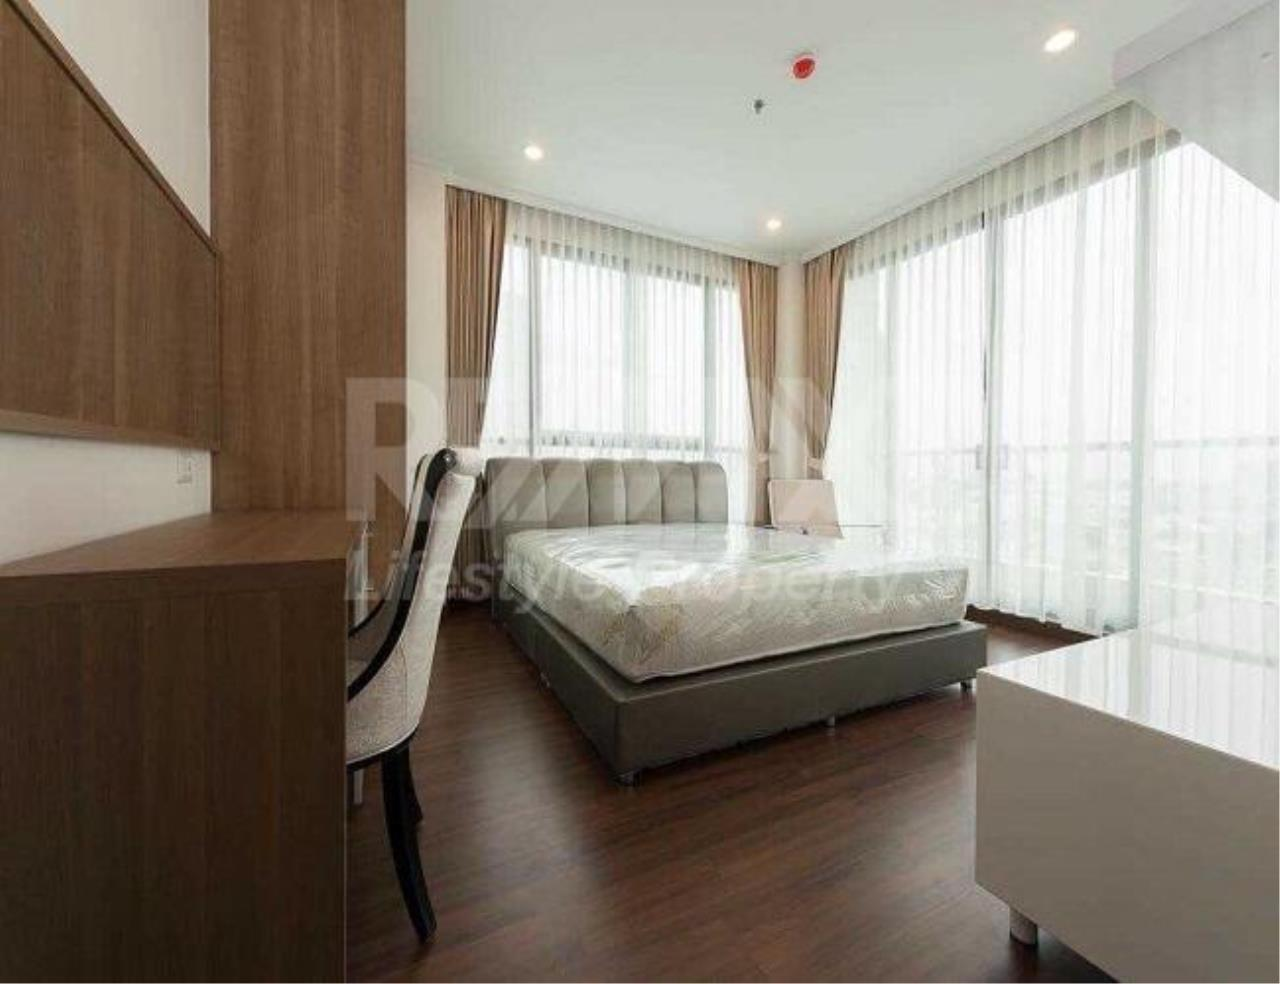 RE/MAX LifeStyle Property Agency's Supalai Elite Sathorn - Suanplu 5